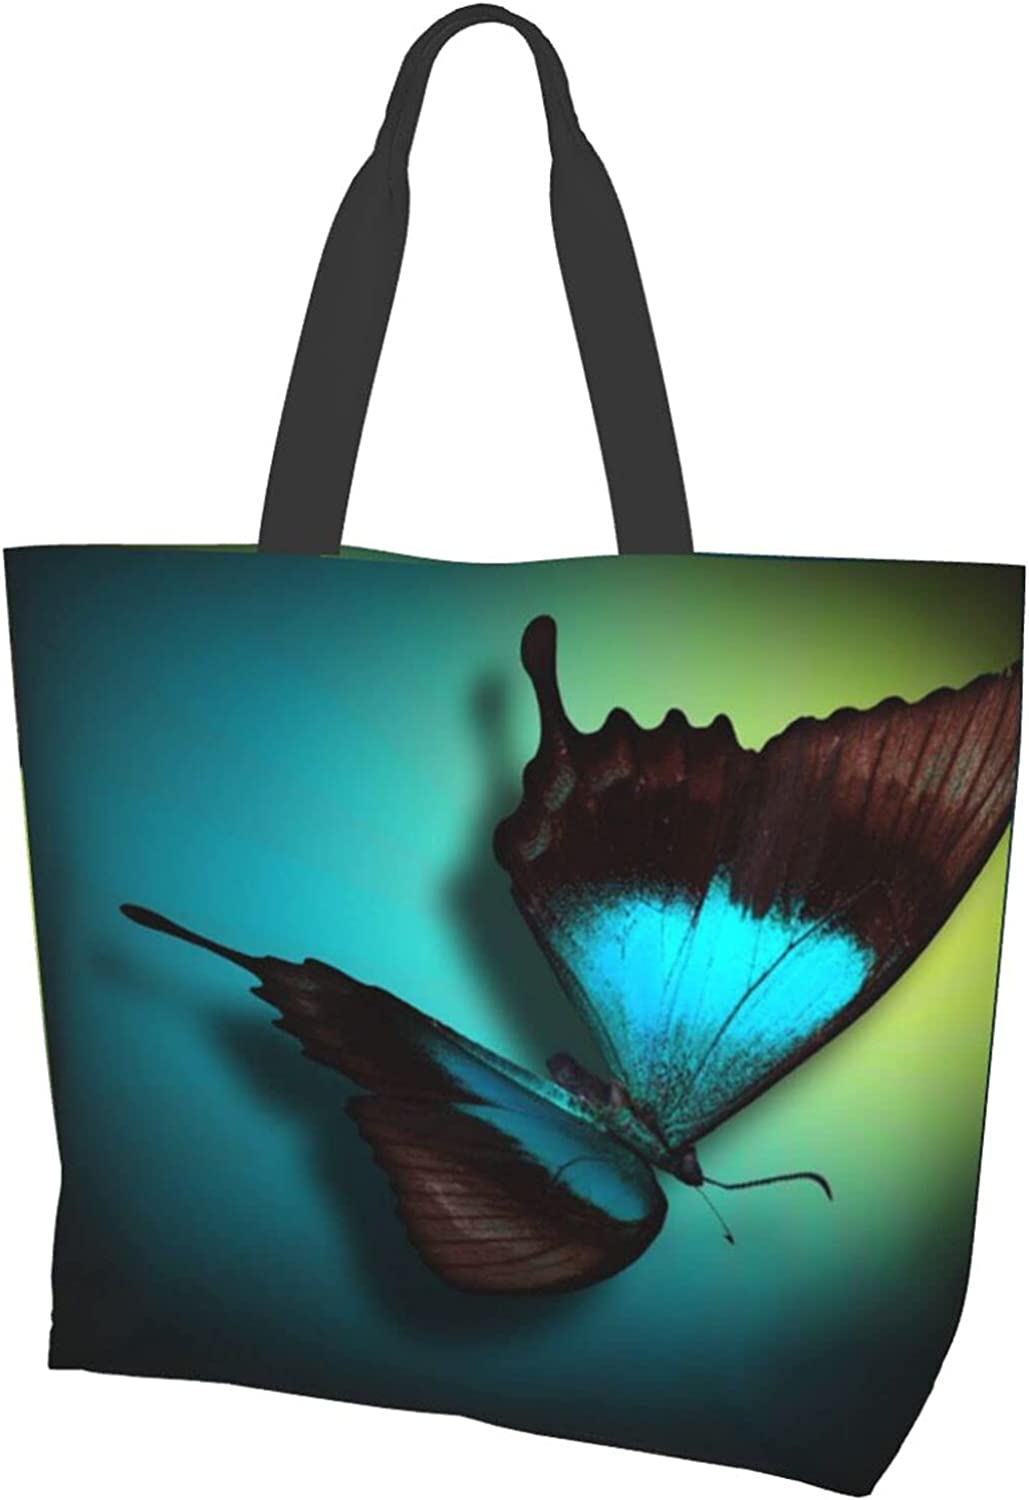 One-Shoulder Tote Bag Beach School Inch 20x15 Sale Special Price ...